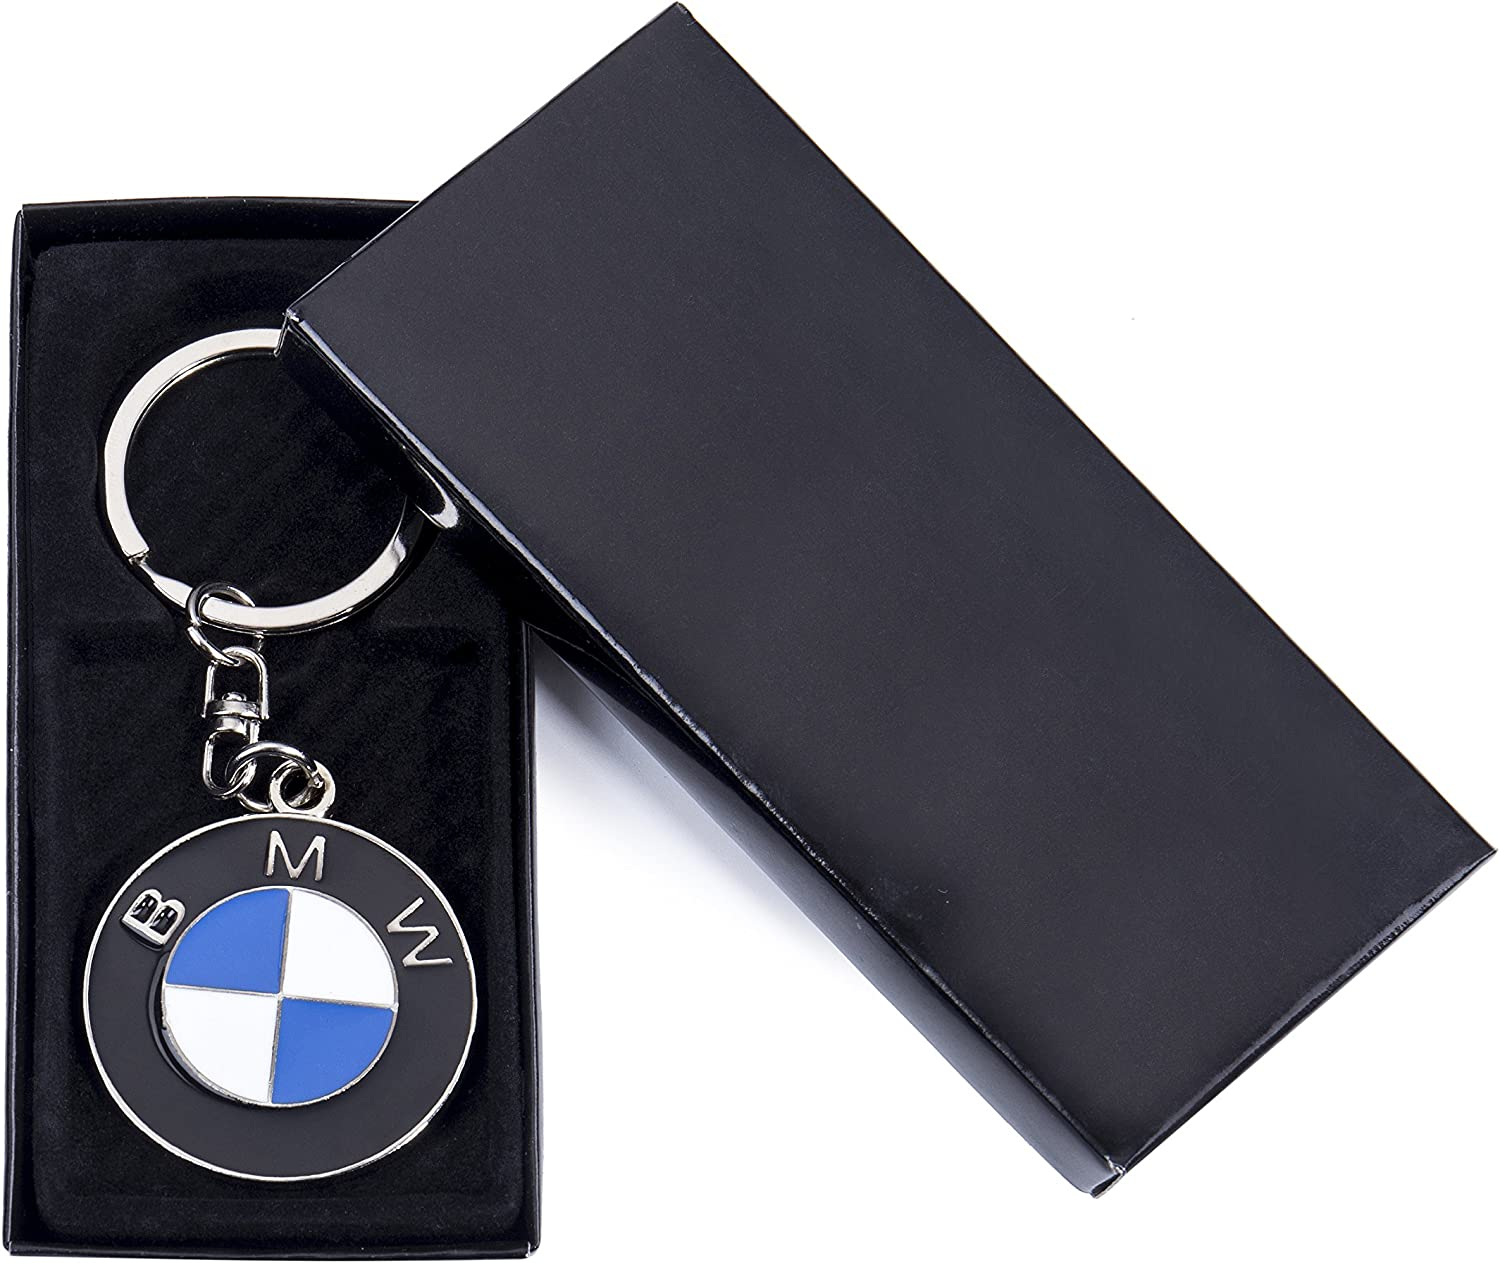 ACGOING 3D Premium Metal Alloy Key Holder,Best for Gifts Ford Car Key Chain Rings